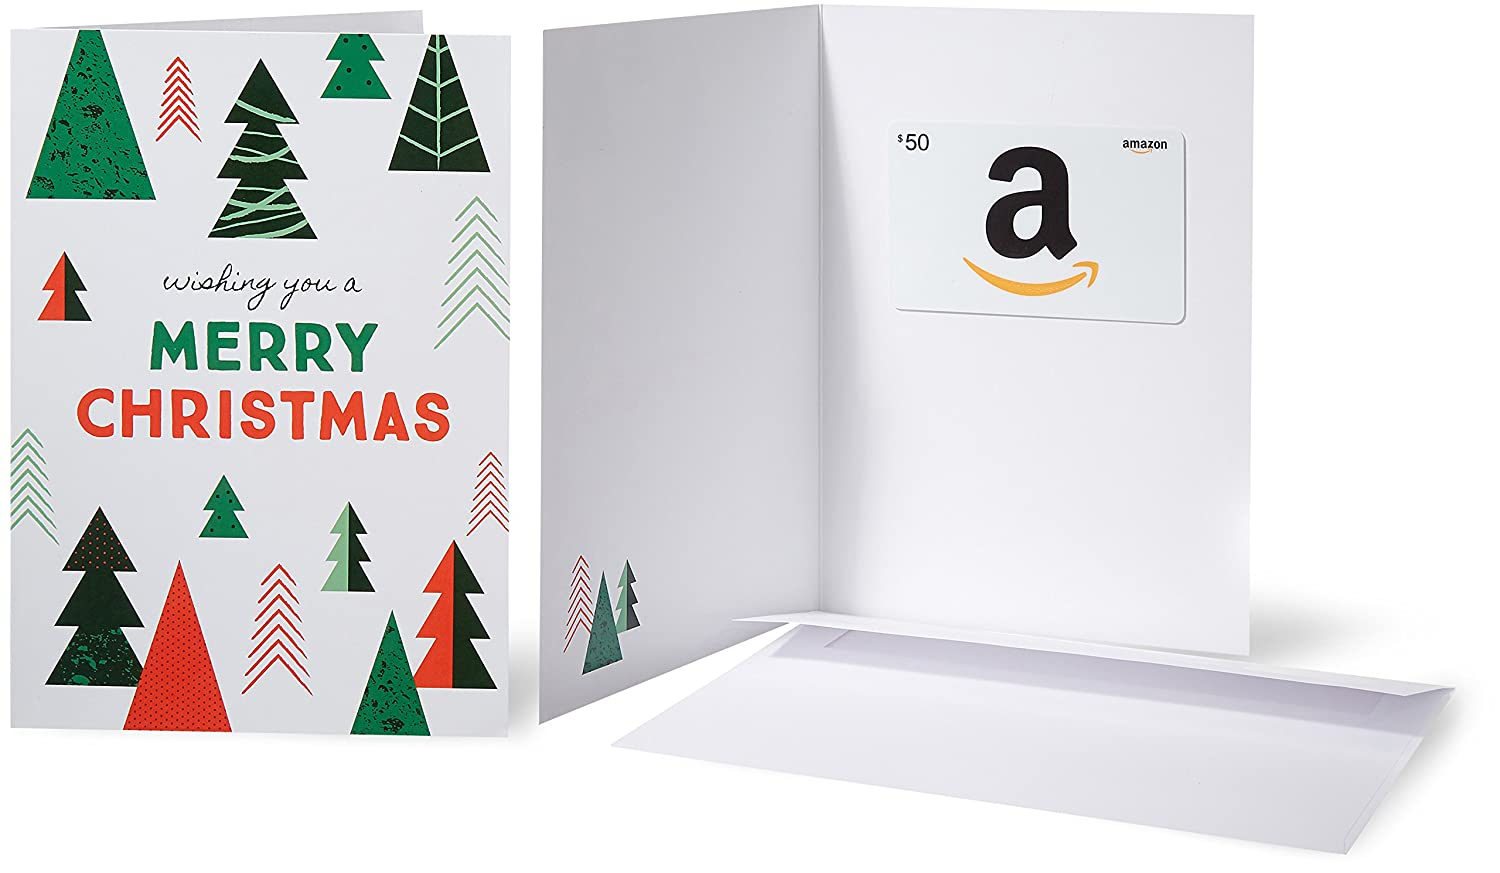 Amazon.ca $50 Gift Card in a Greeting Card (Christmas Tree)